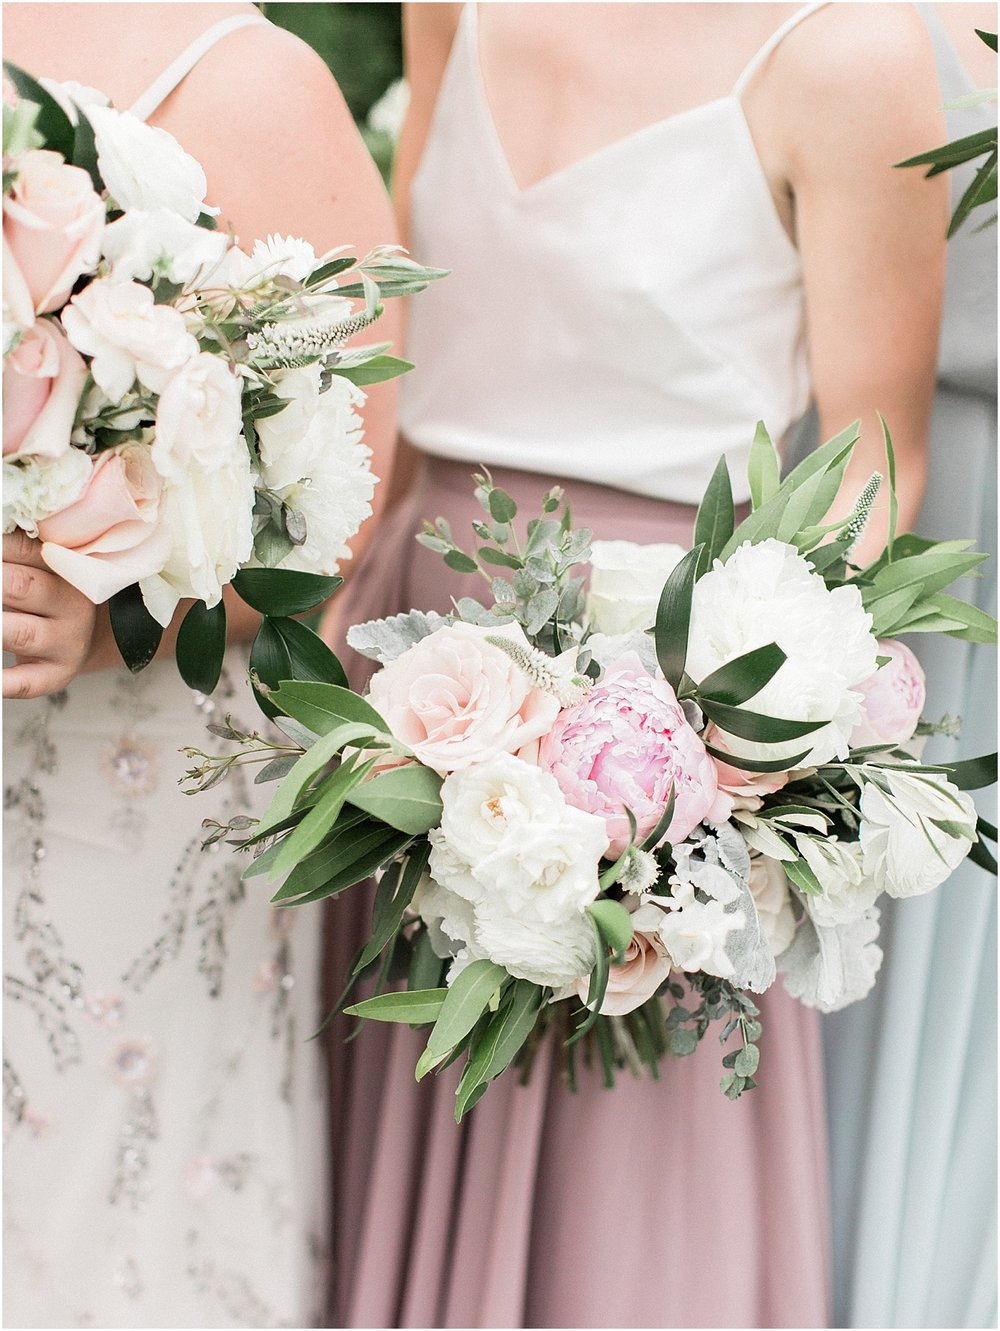 lindsey_paul_indian_pond_country_club_wild_dahlia_brewster_gardens_plymouth_cape_cod_boston_wedding_photographer_meredith_jane_photography_photo_0378.jpg